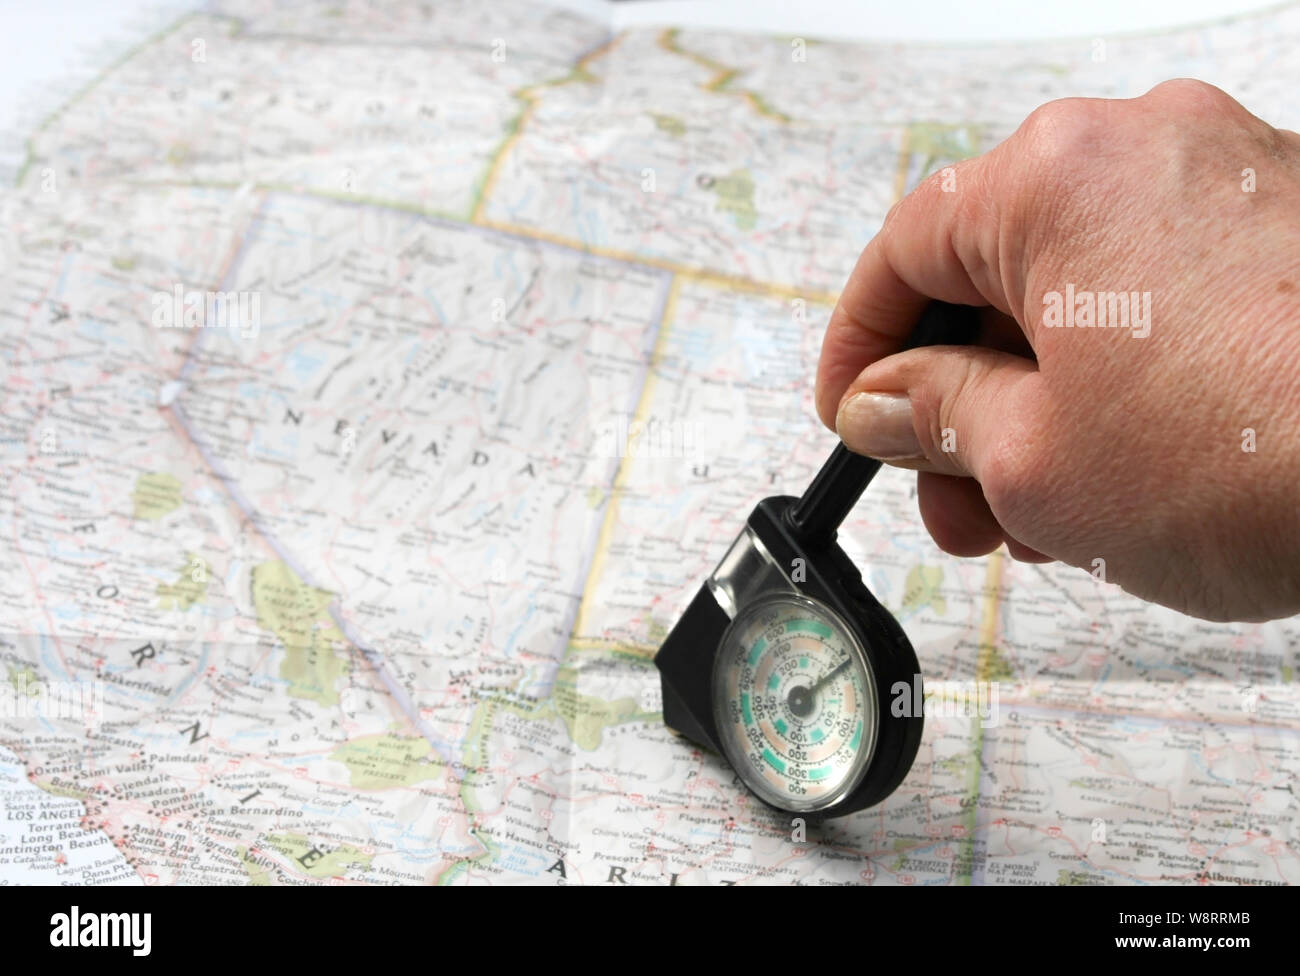 Hand with distance calculator on route map of west usa Stock ... Distance Map Calculator on map services, google miles calculator, map with miles calculation, map distance time, map world time, map area codes, map distance scale, map statistics, map distance between cities, map distance converter, map walking distance, map distance measurement tool, map of ireland with mileage, map ireland dublin and belfast, map travel, map distance ruler, map distance on map, map time zones, map india, map with miles of ireland,